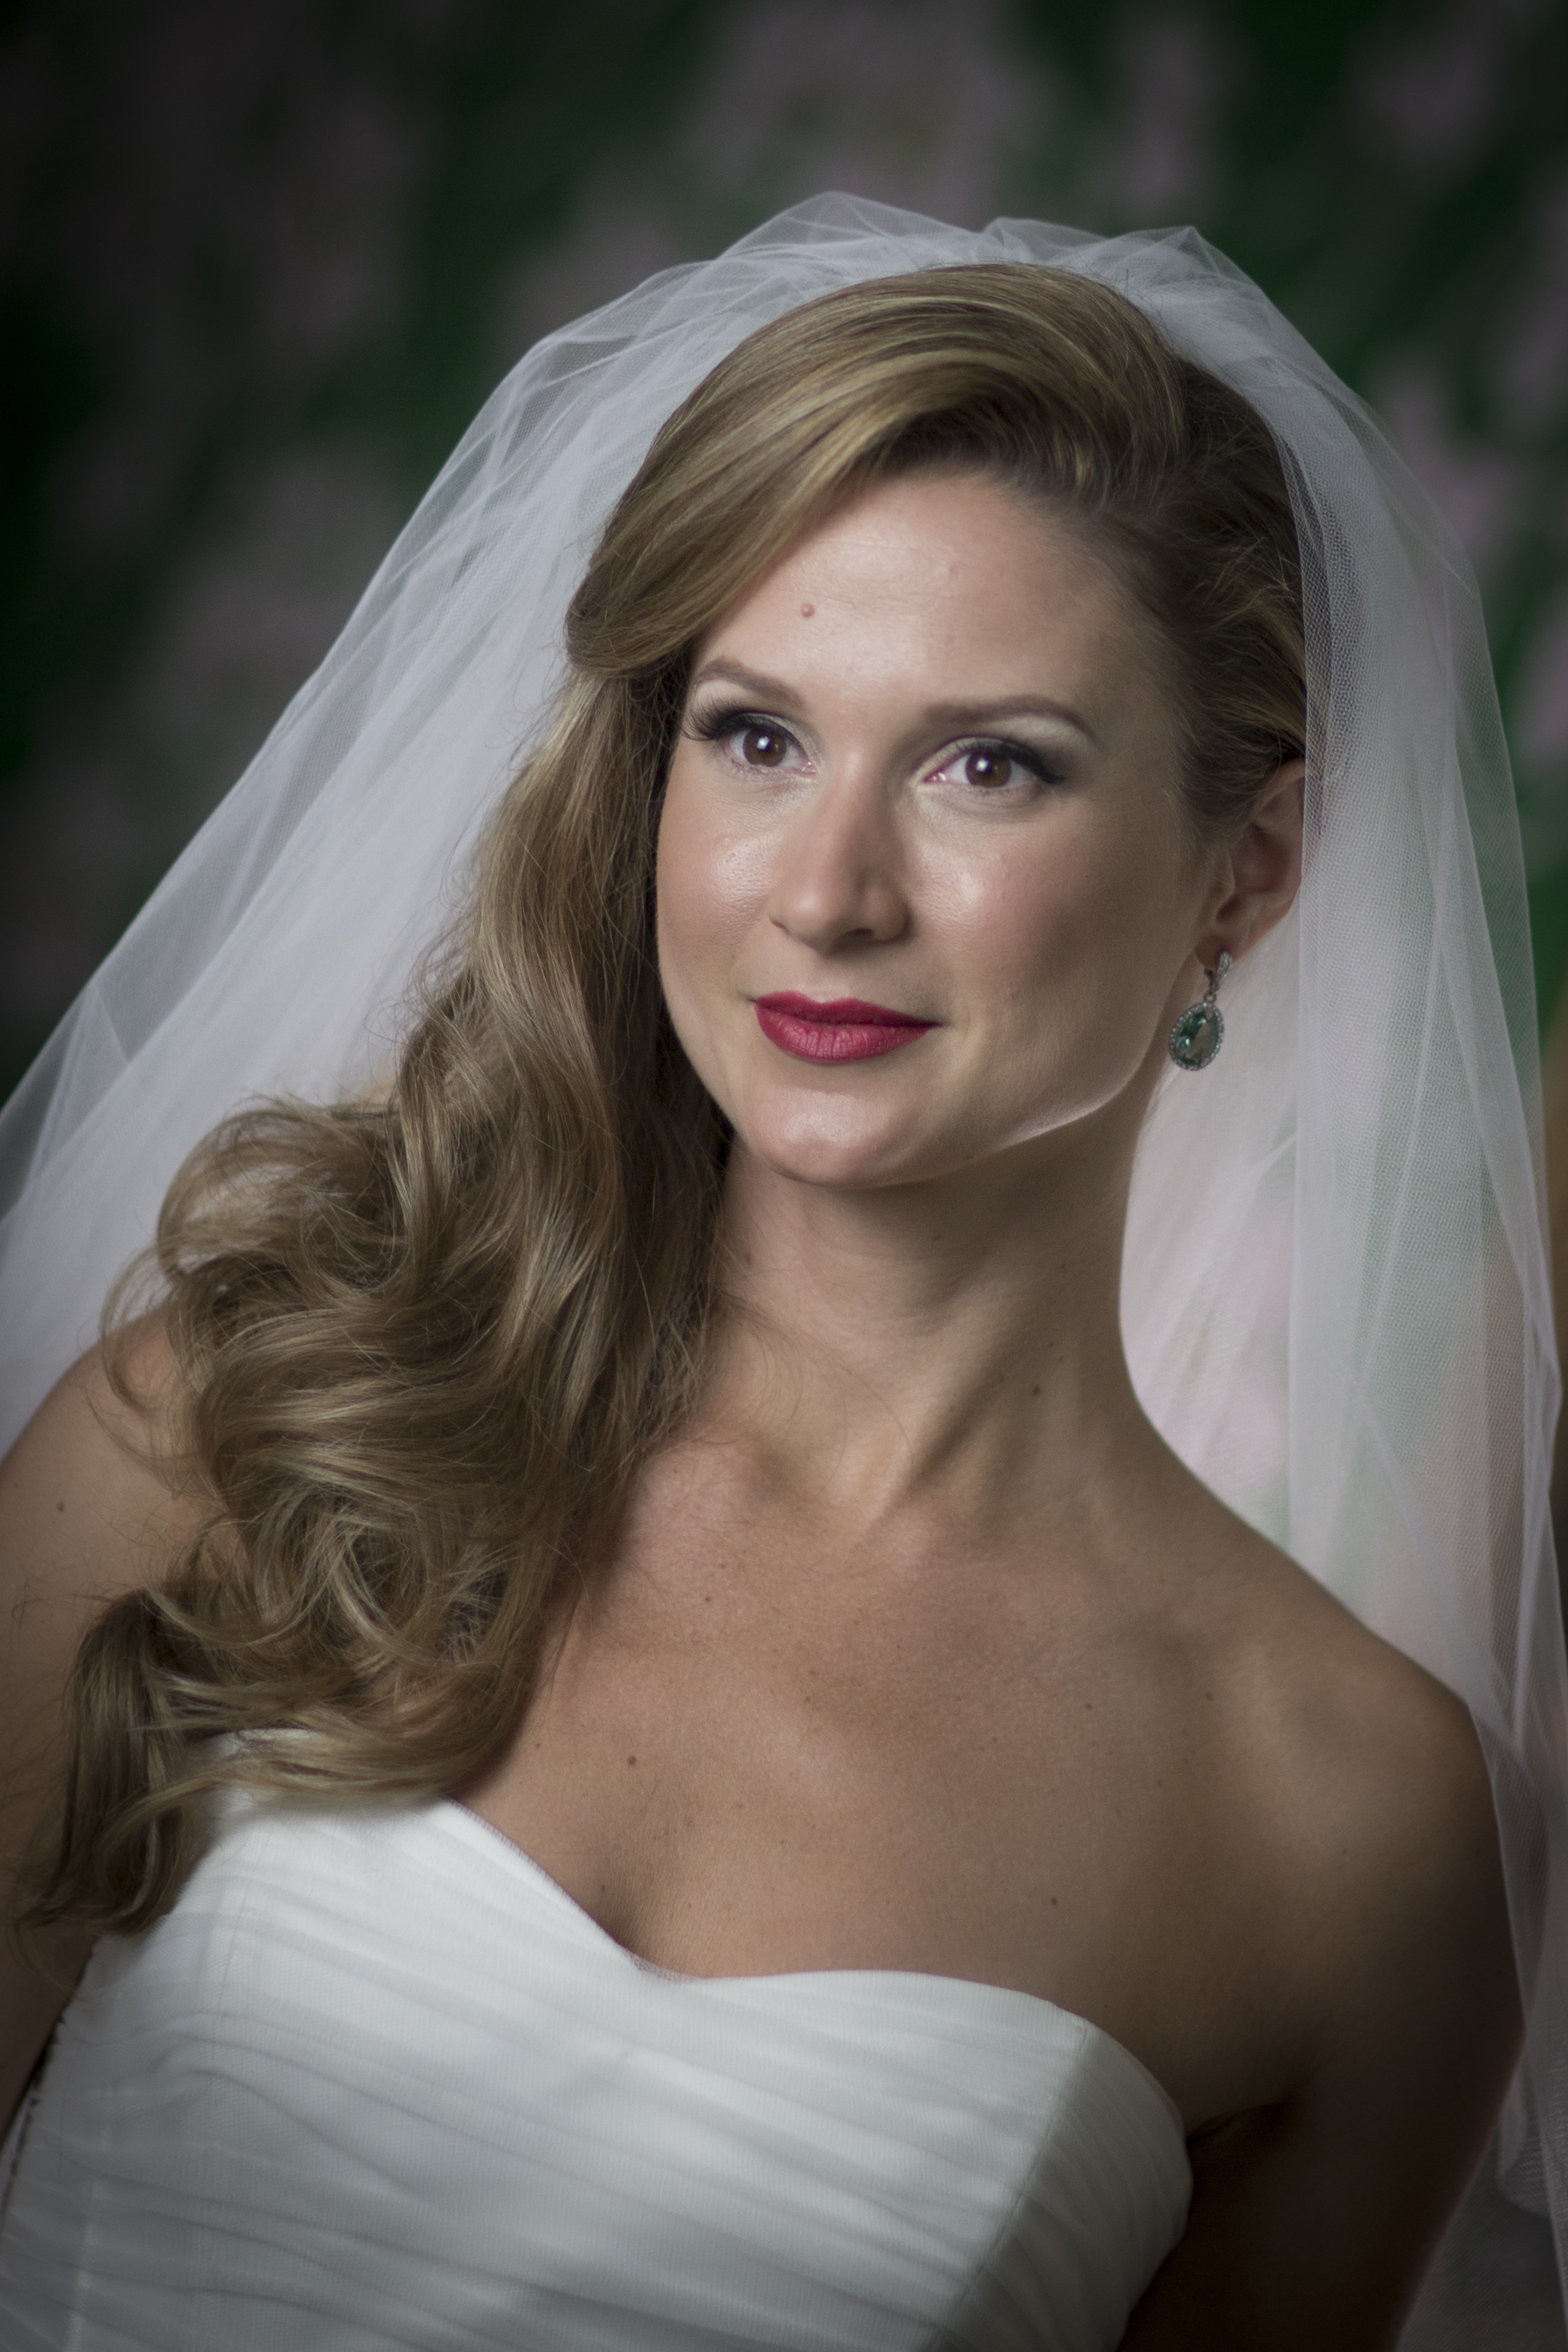 Dewey bridal makeup